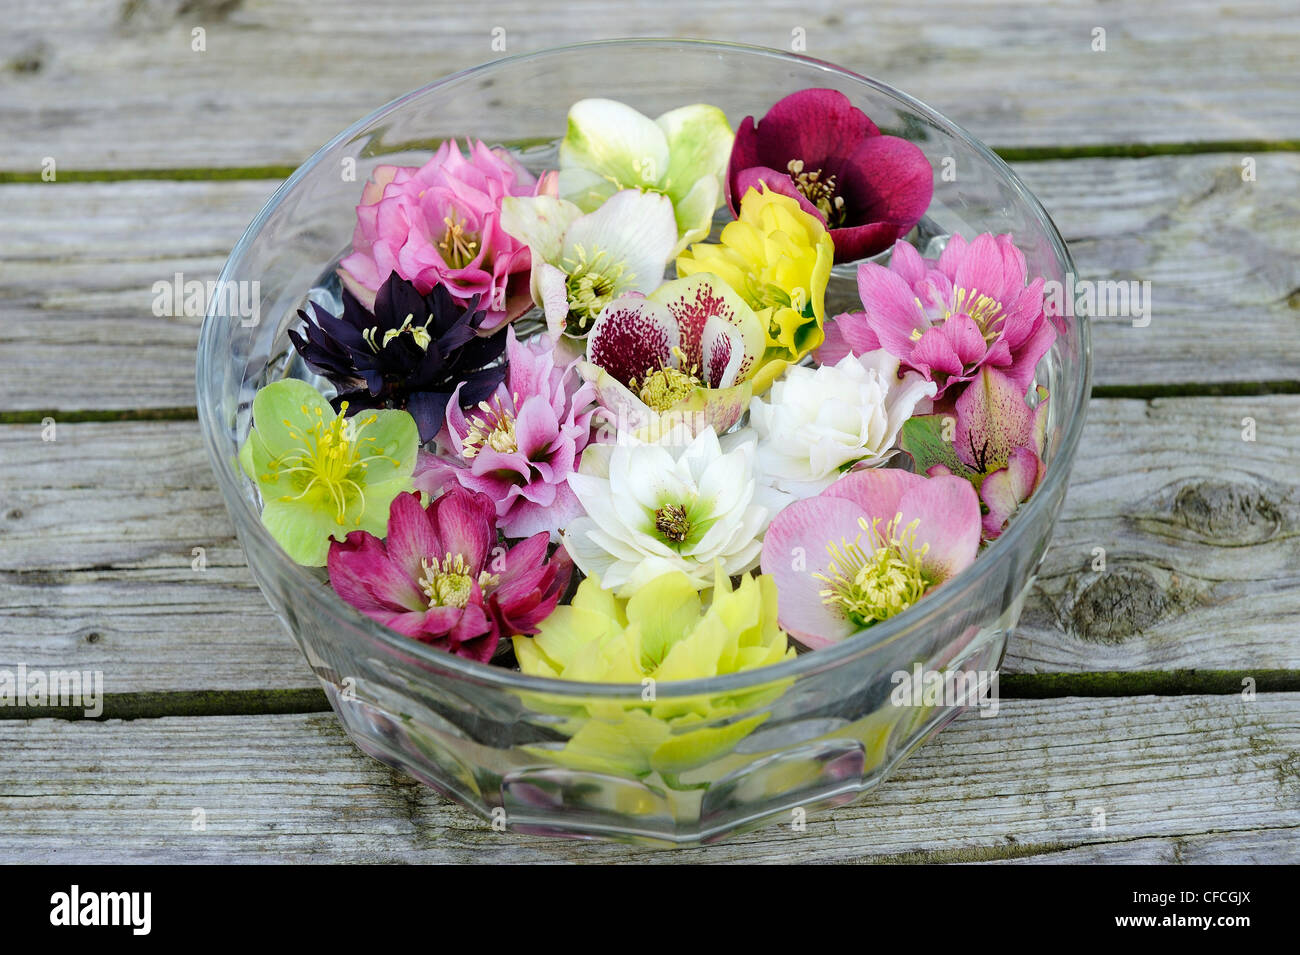 Floral Decoration Of Hellebore Flowers Floating On Water In A Glass